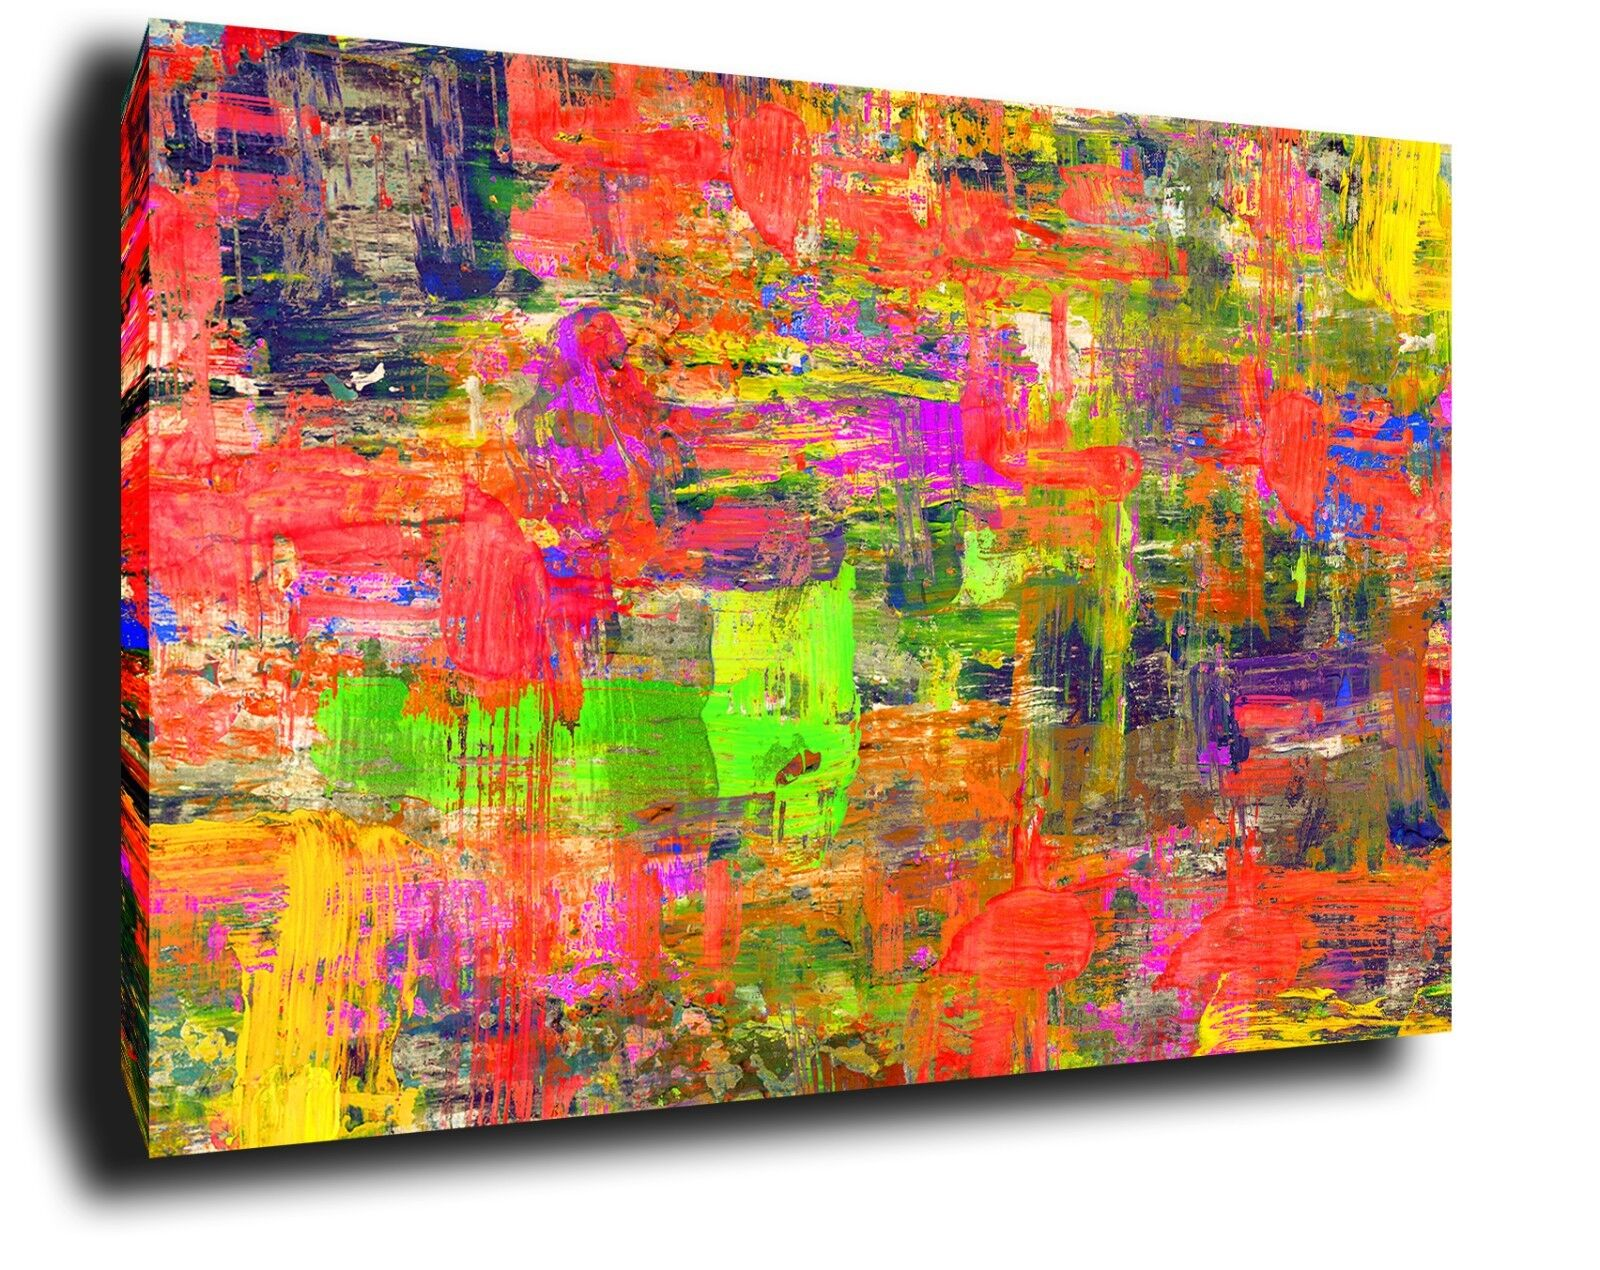 ABSTRACT Canvas Wall Art Picture Large oil painting Print Framed home decor